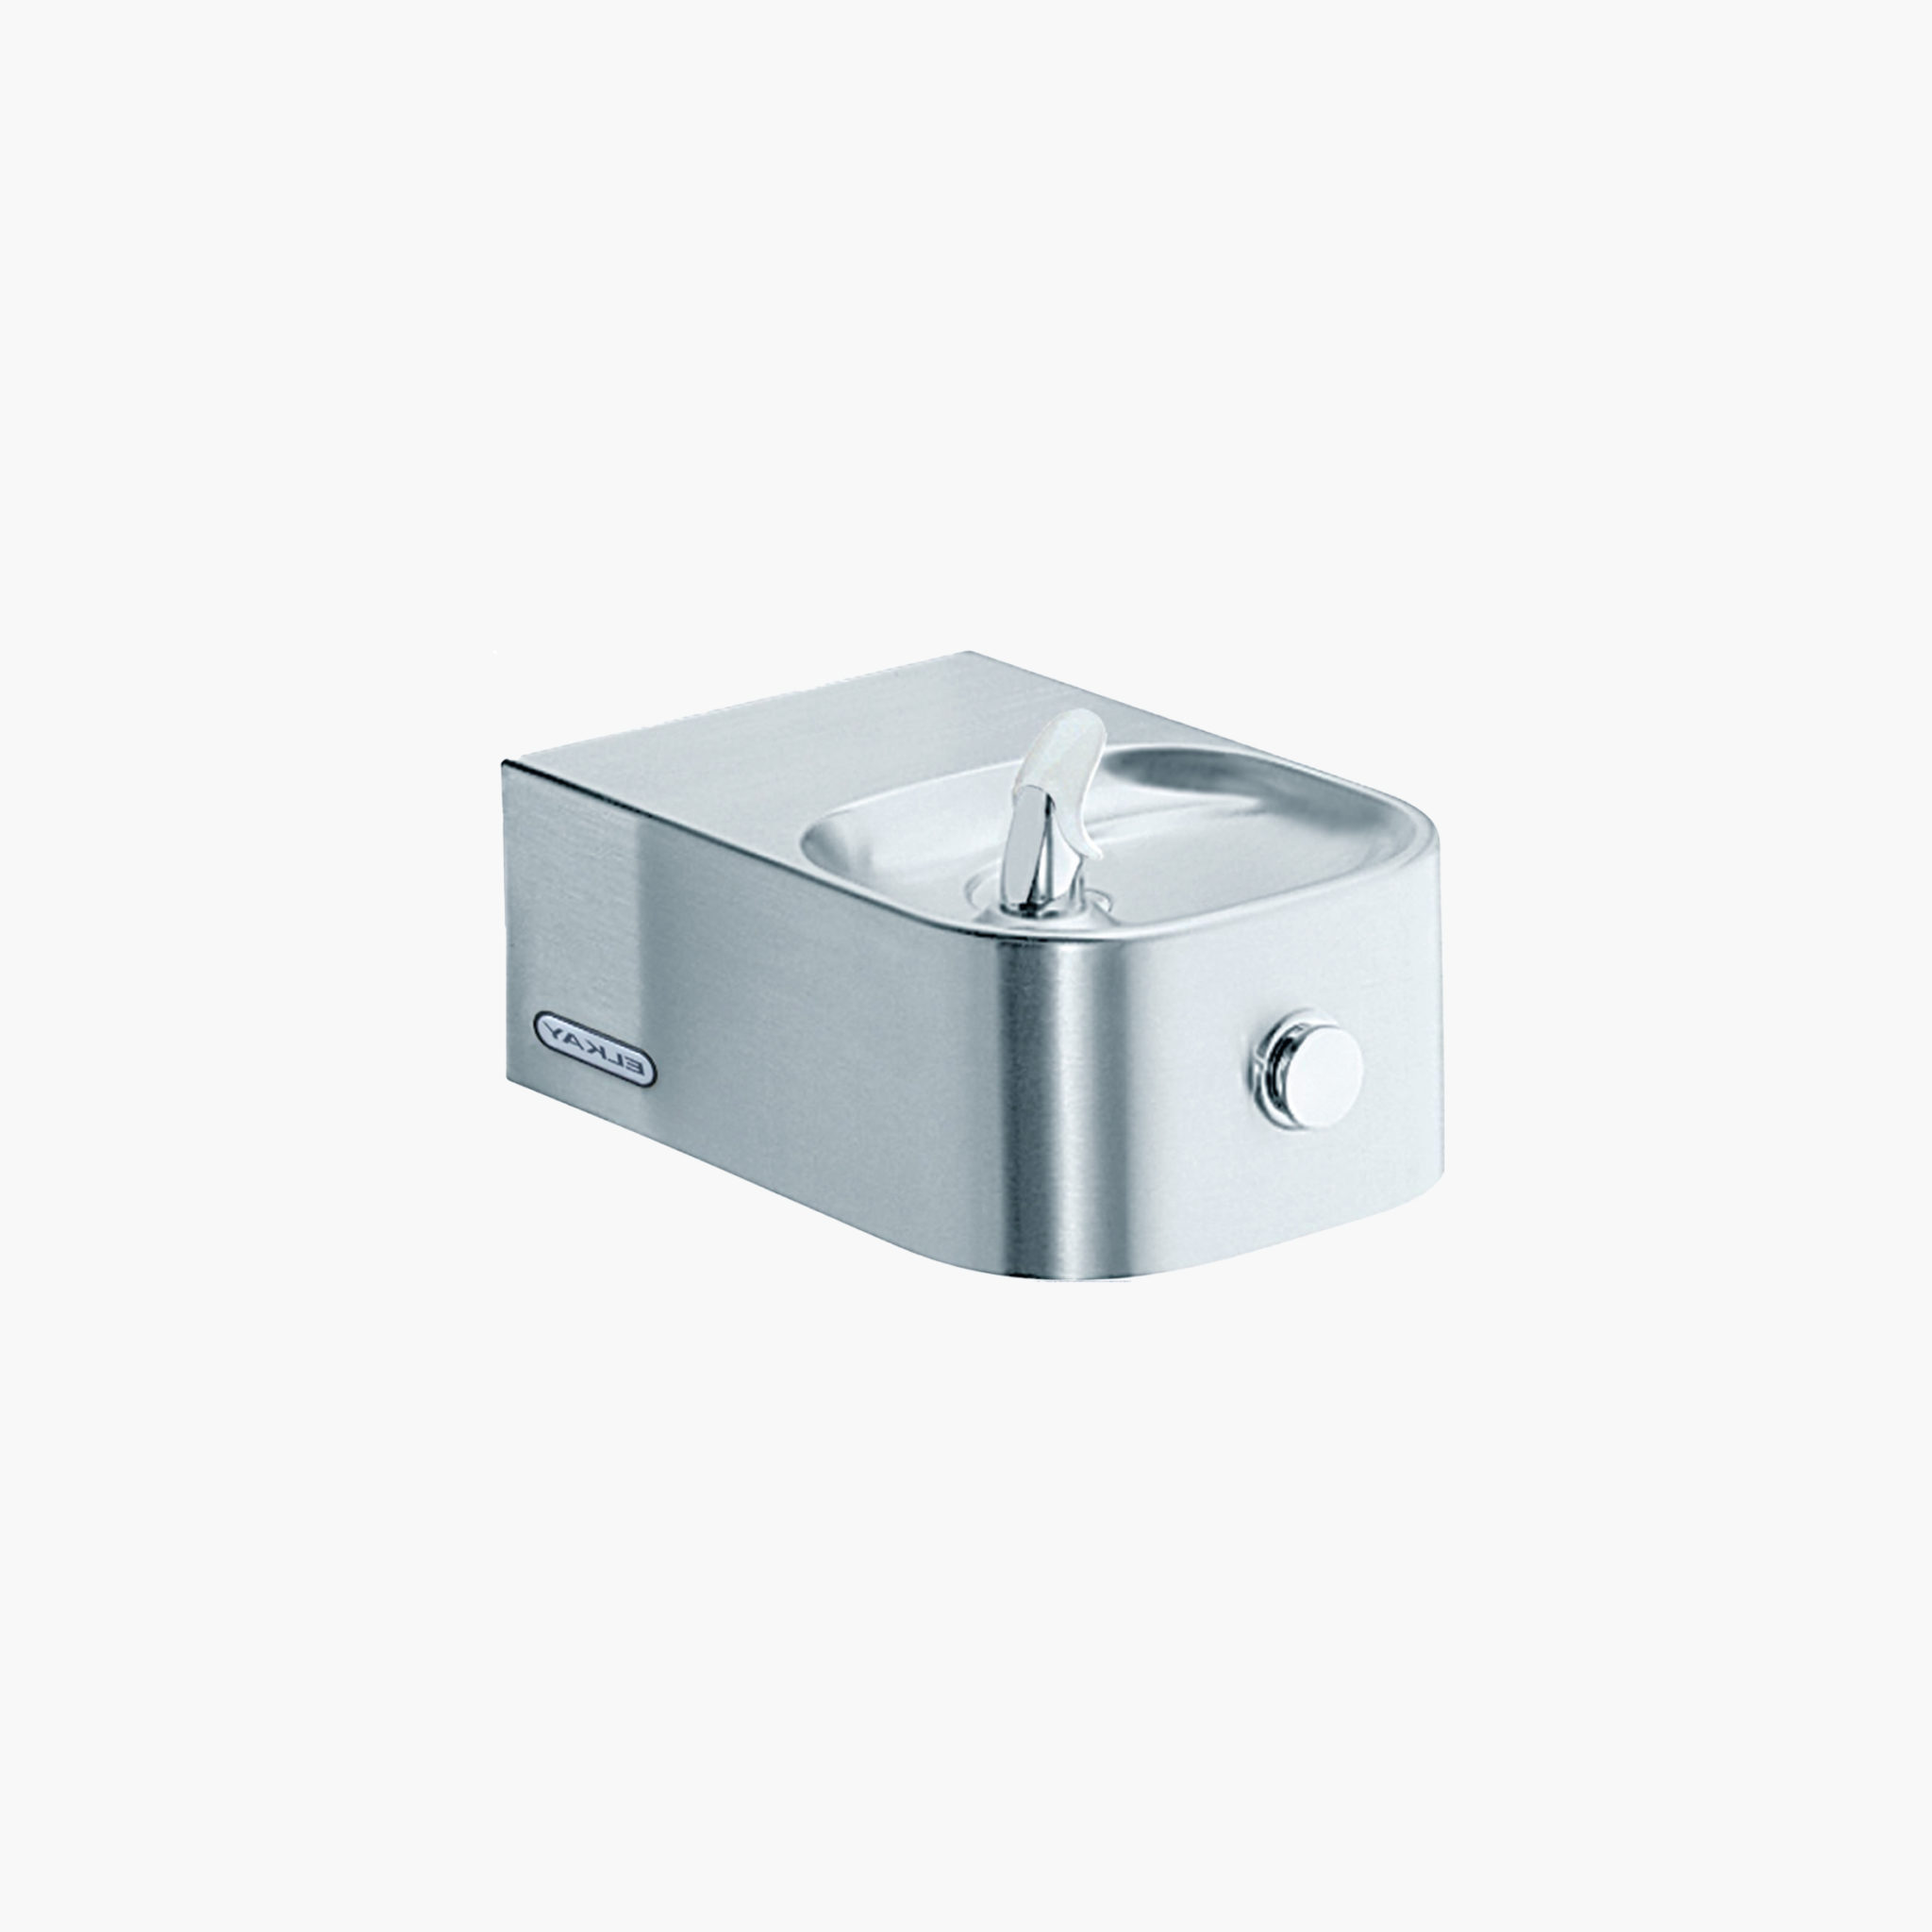 Elkay SoftSides Single Wheelchair-accessible Drinking Fountain (Non-Refrigerated)